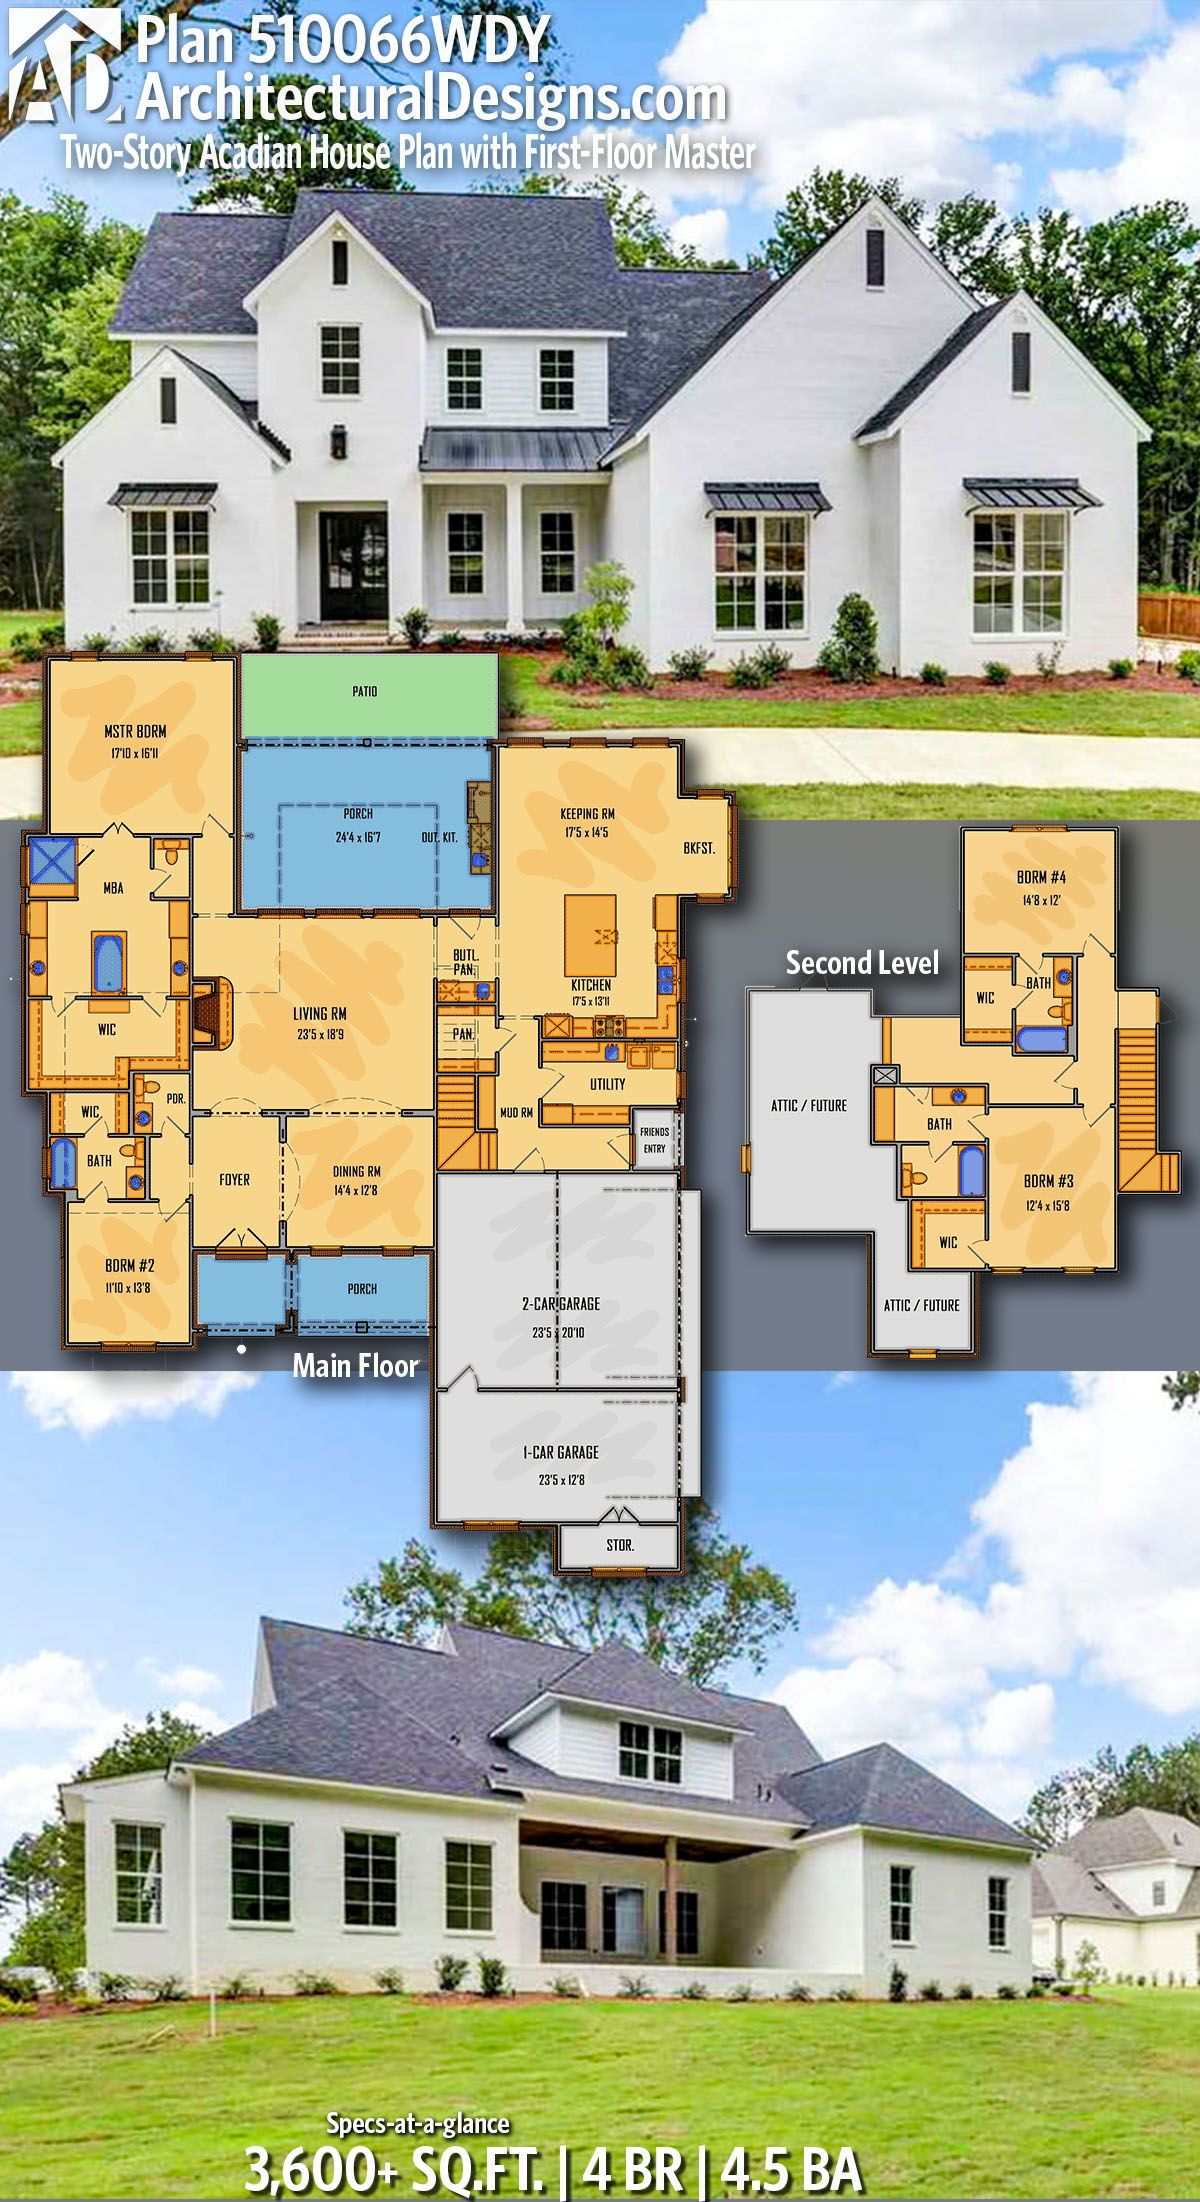 Plan 510066wdy Two Story Acadian House Plan With First Floor Master Acadian House Plans House Plans Architecture Design